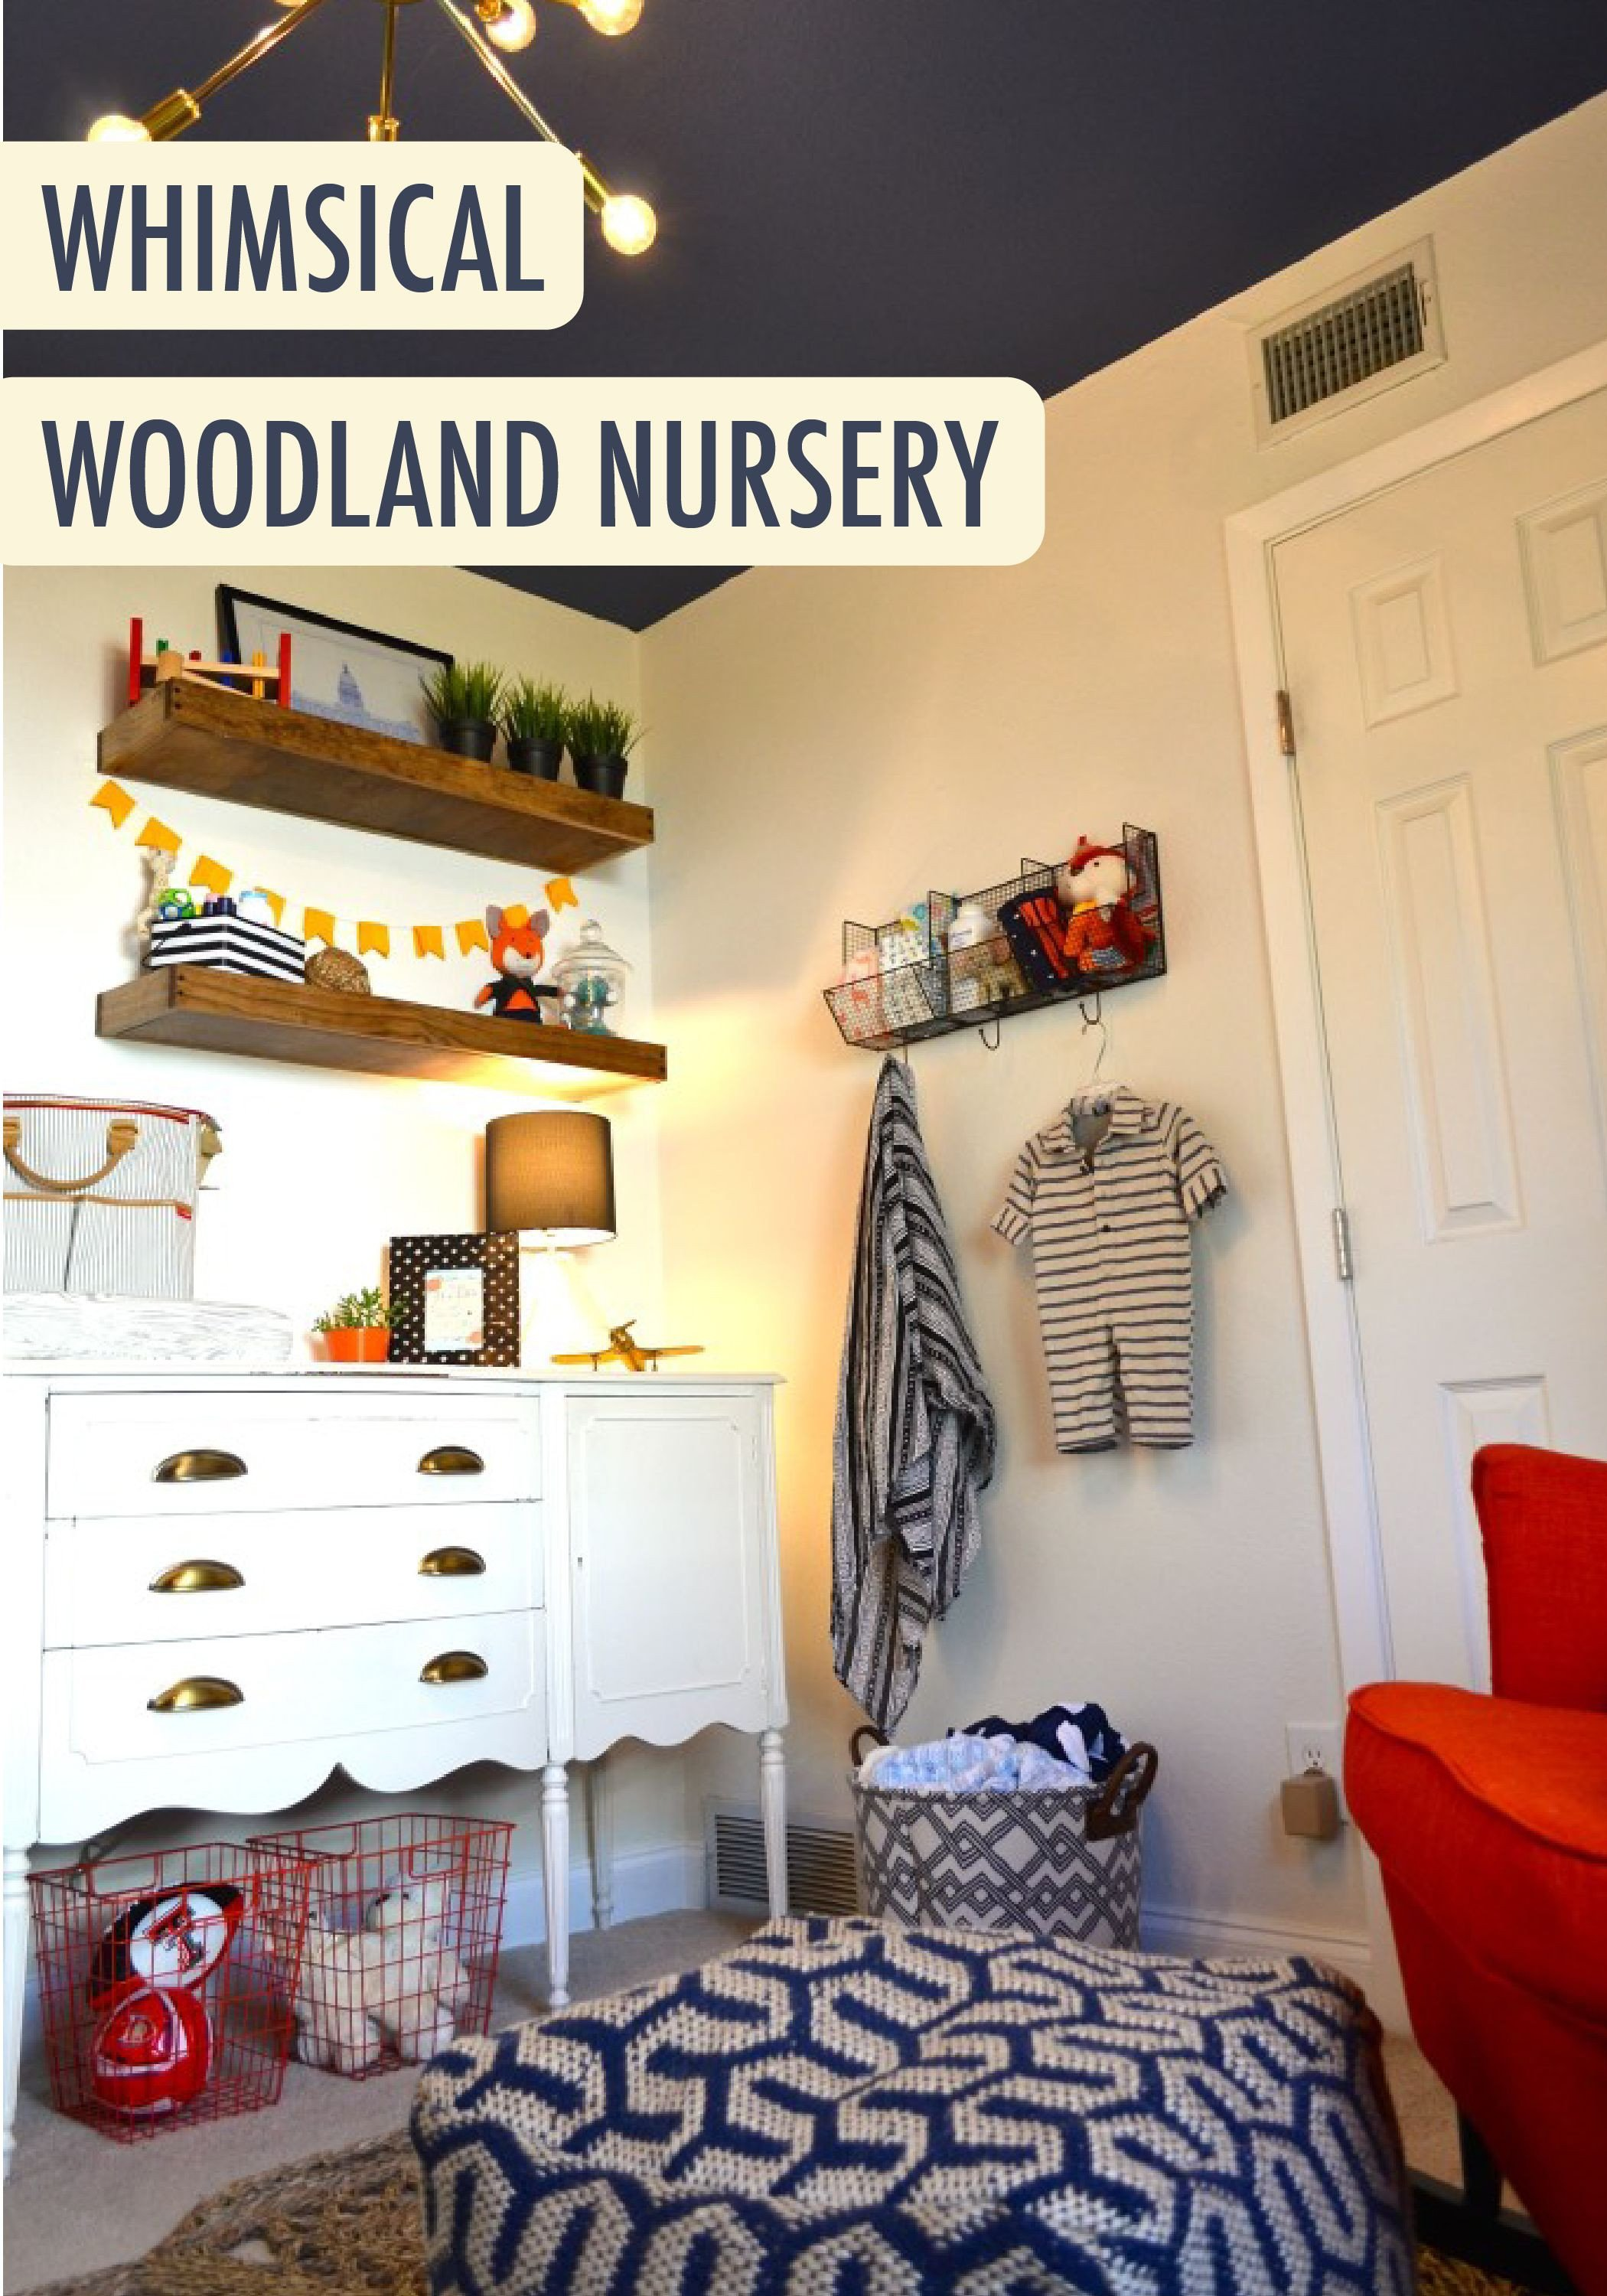 Navy Blue and Yellow Bedroom Unique Whimsical Woodland Nursery